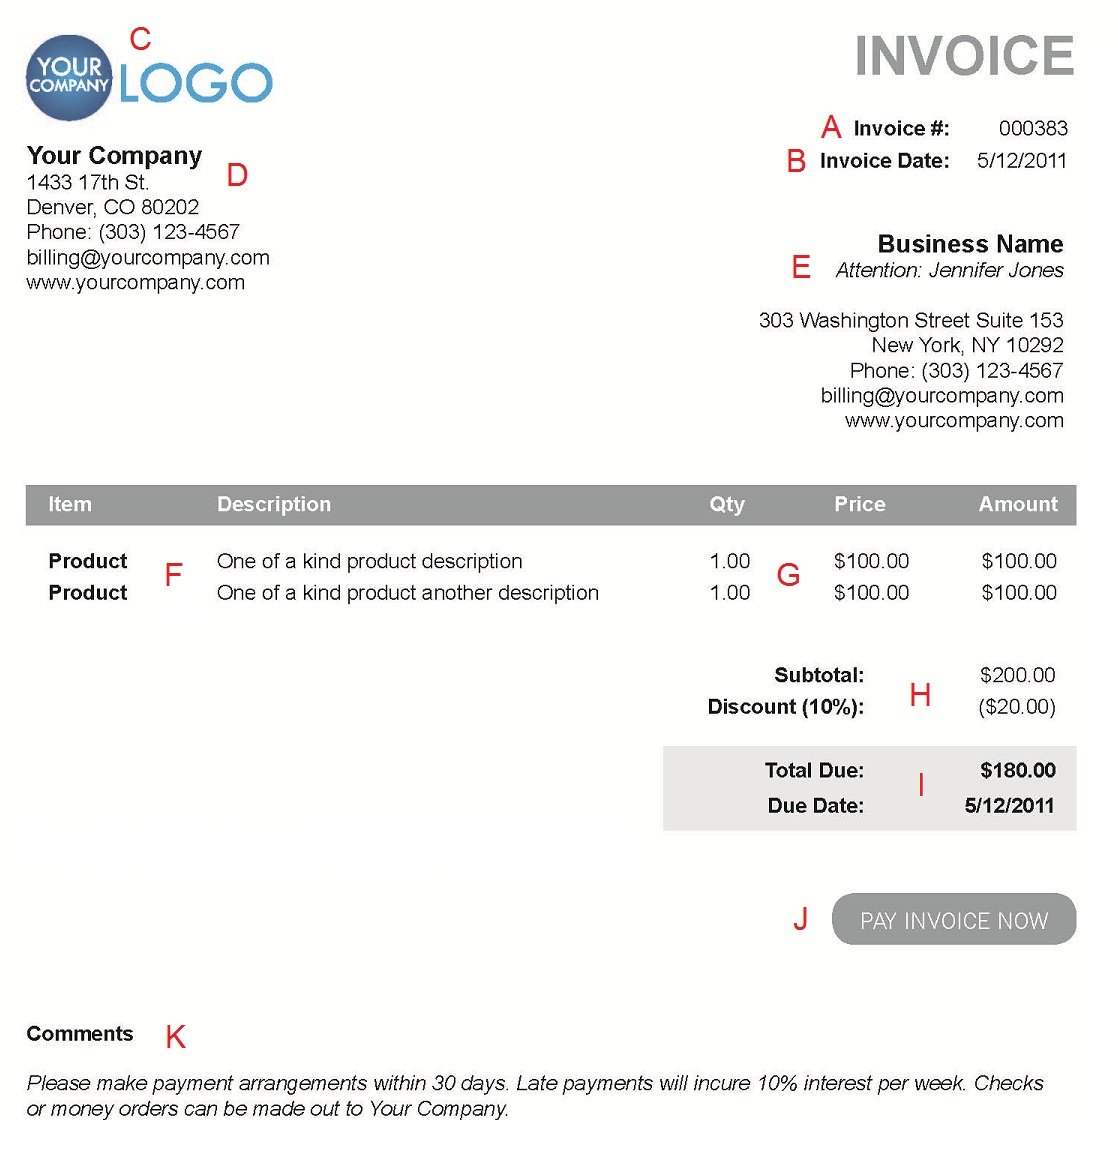 Pigbrotherus  Wonderful The  Different Sections Of An Electronic Payment Invoice With Exquisite A  With Awesome Reconcile Invoices Definition Also Repair Invoices In Addition Mac Invoice App And Proforma Invoice Format For Export As Well As Invoice Template Photography Additionally How To Find New Car Invoice Price From Paysimplecom With Pigbrotherus  Exquisite The  Different Sections Of An Electronic Payment Invoice With Awesome A  And Wonderful Reconcile Invoices Definition Also Repair Invoices In Addition Mac Invoice App From Paysimplecom